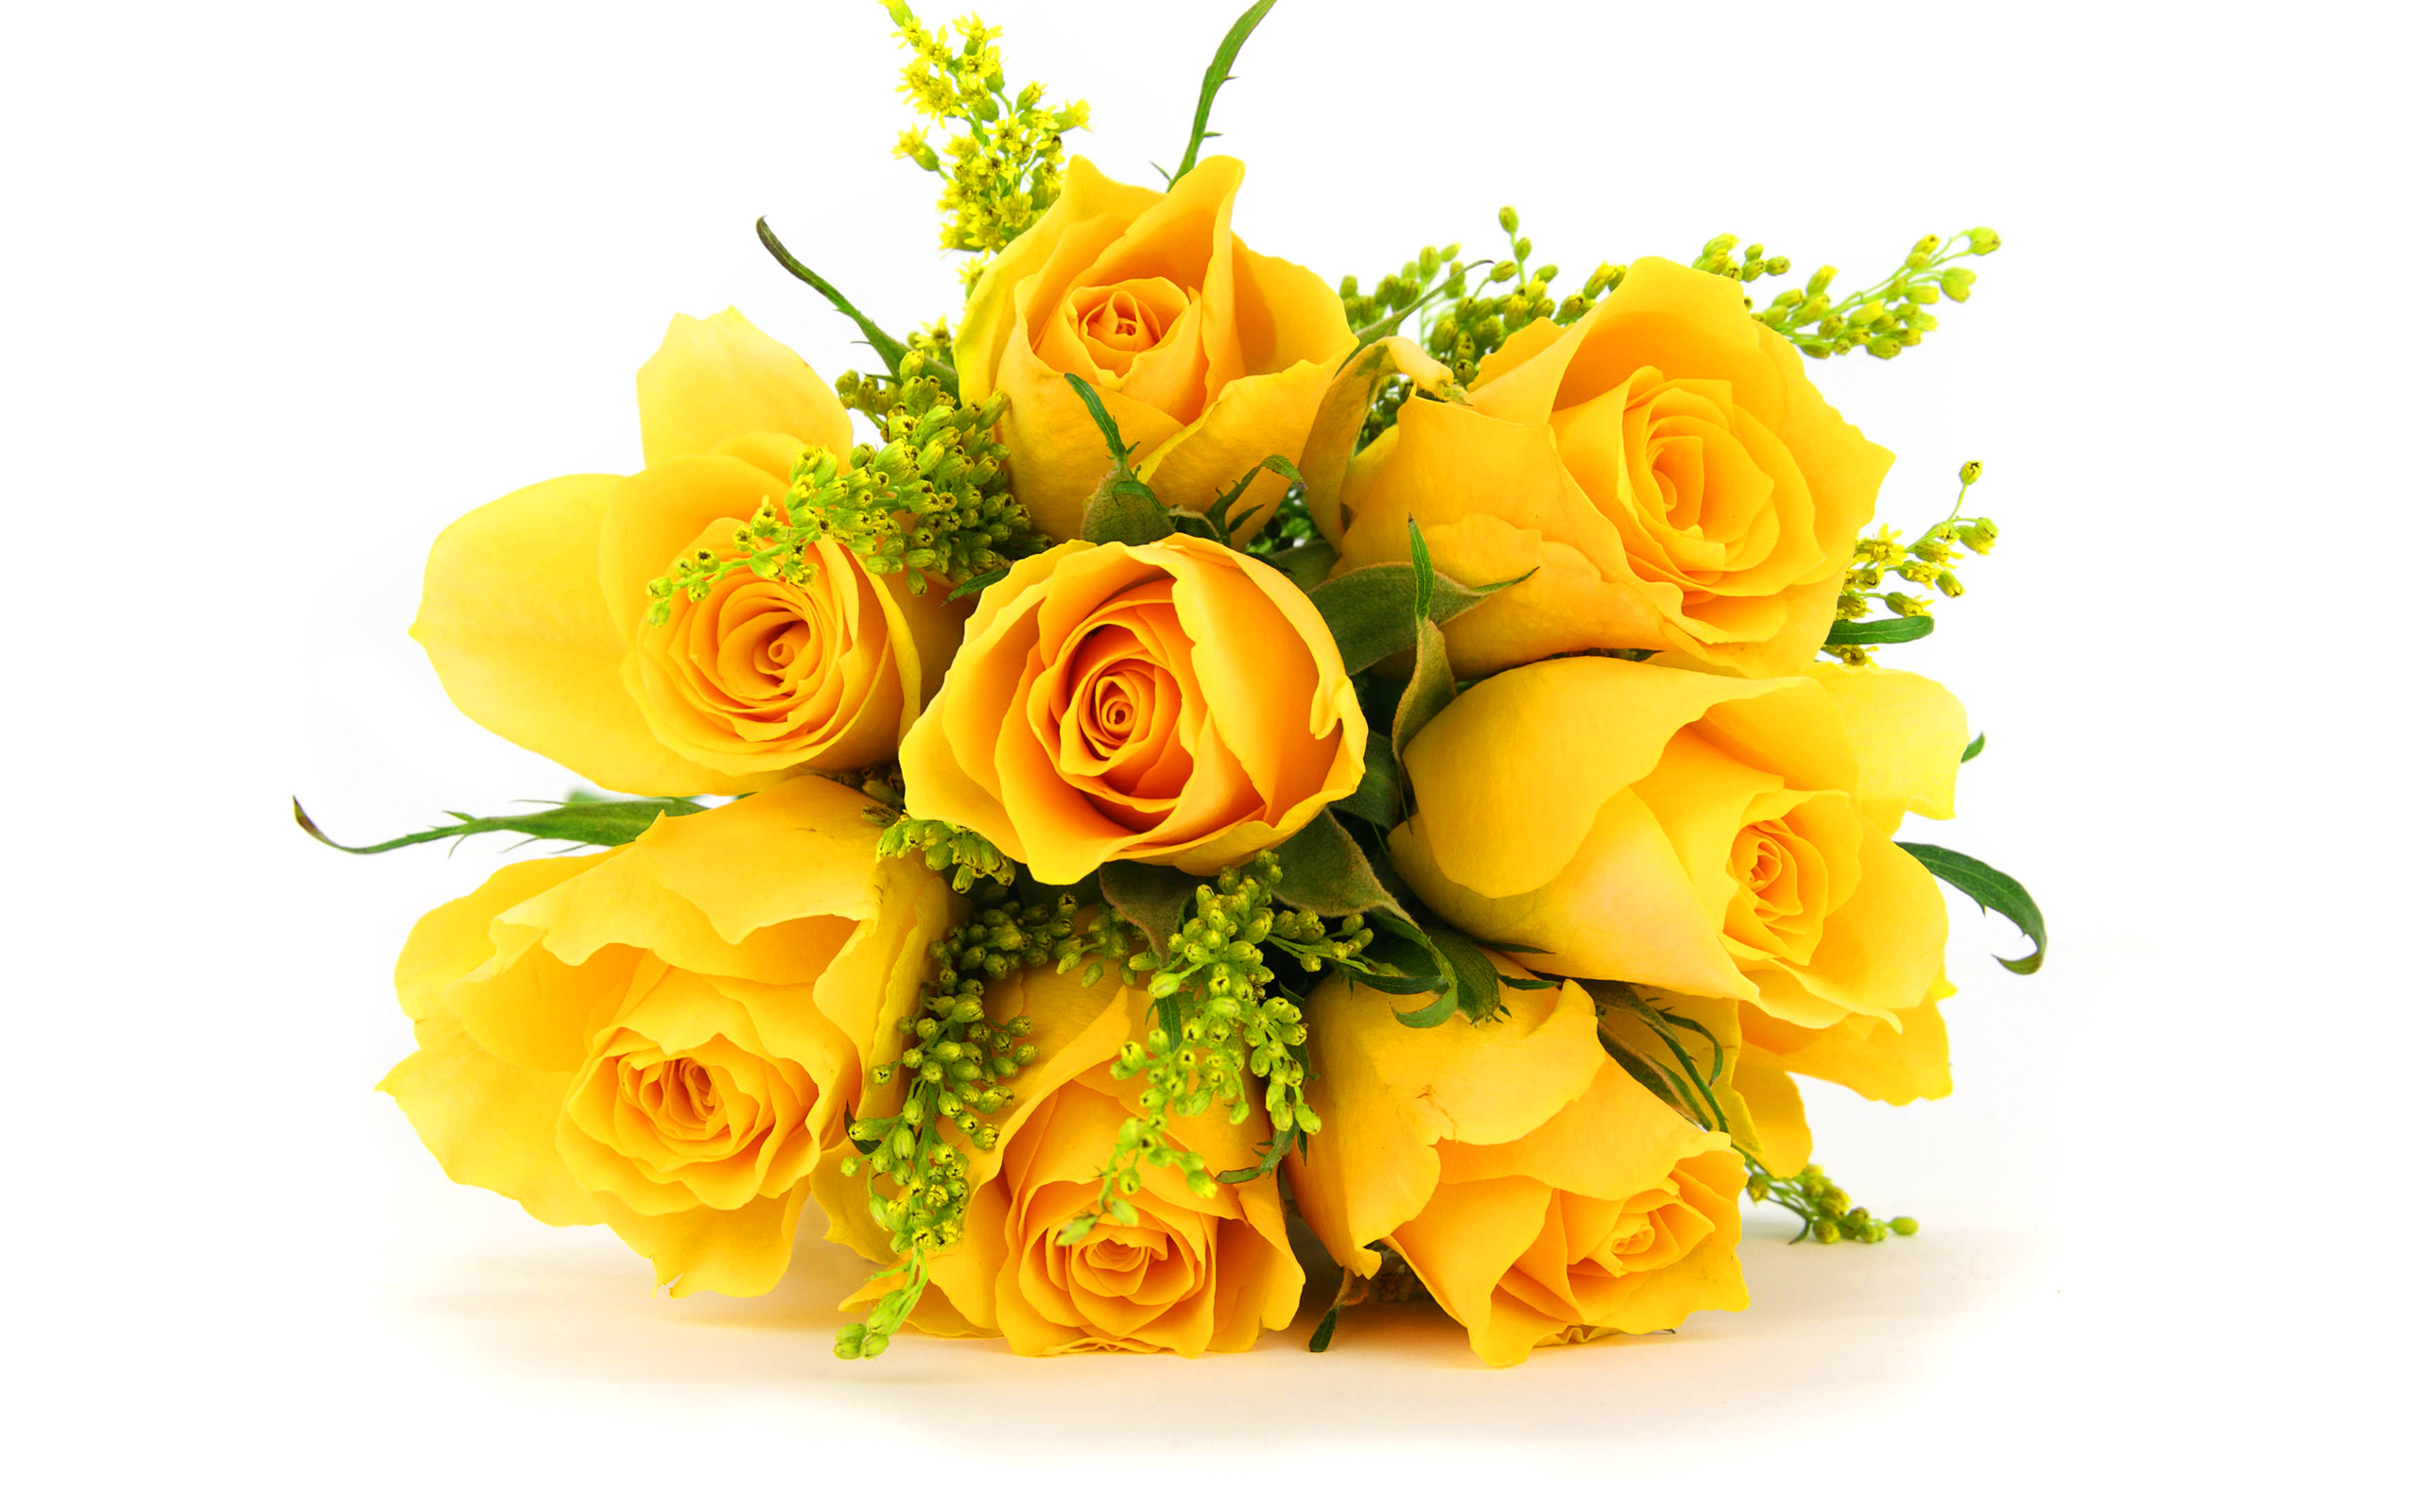 Drawn red rose yellow rose Images V Images HD Yellow